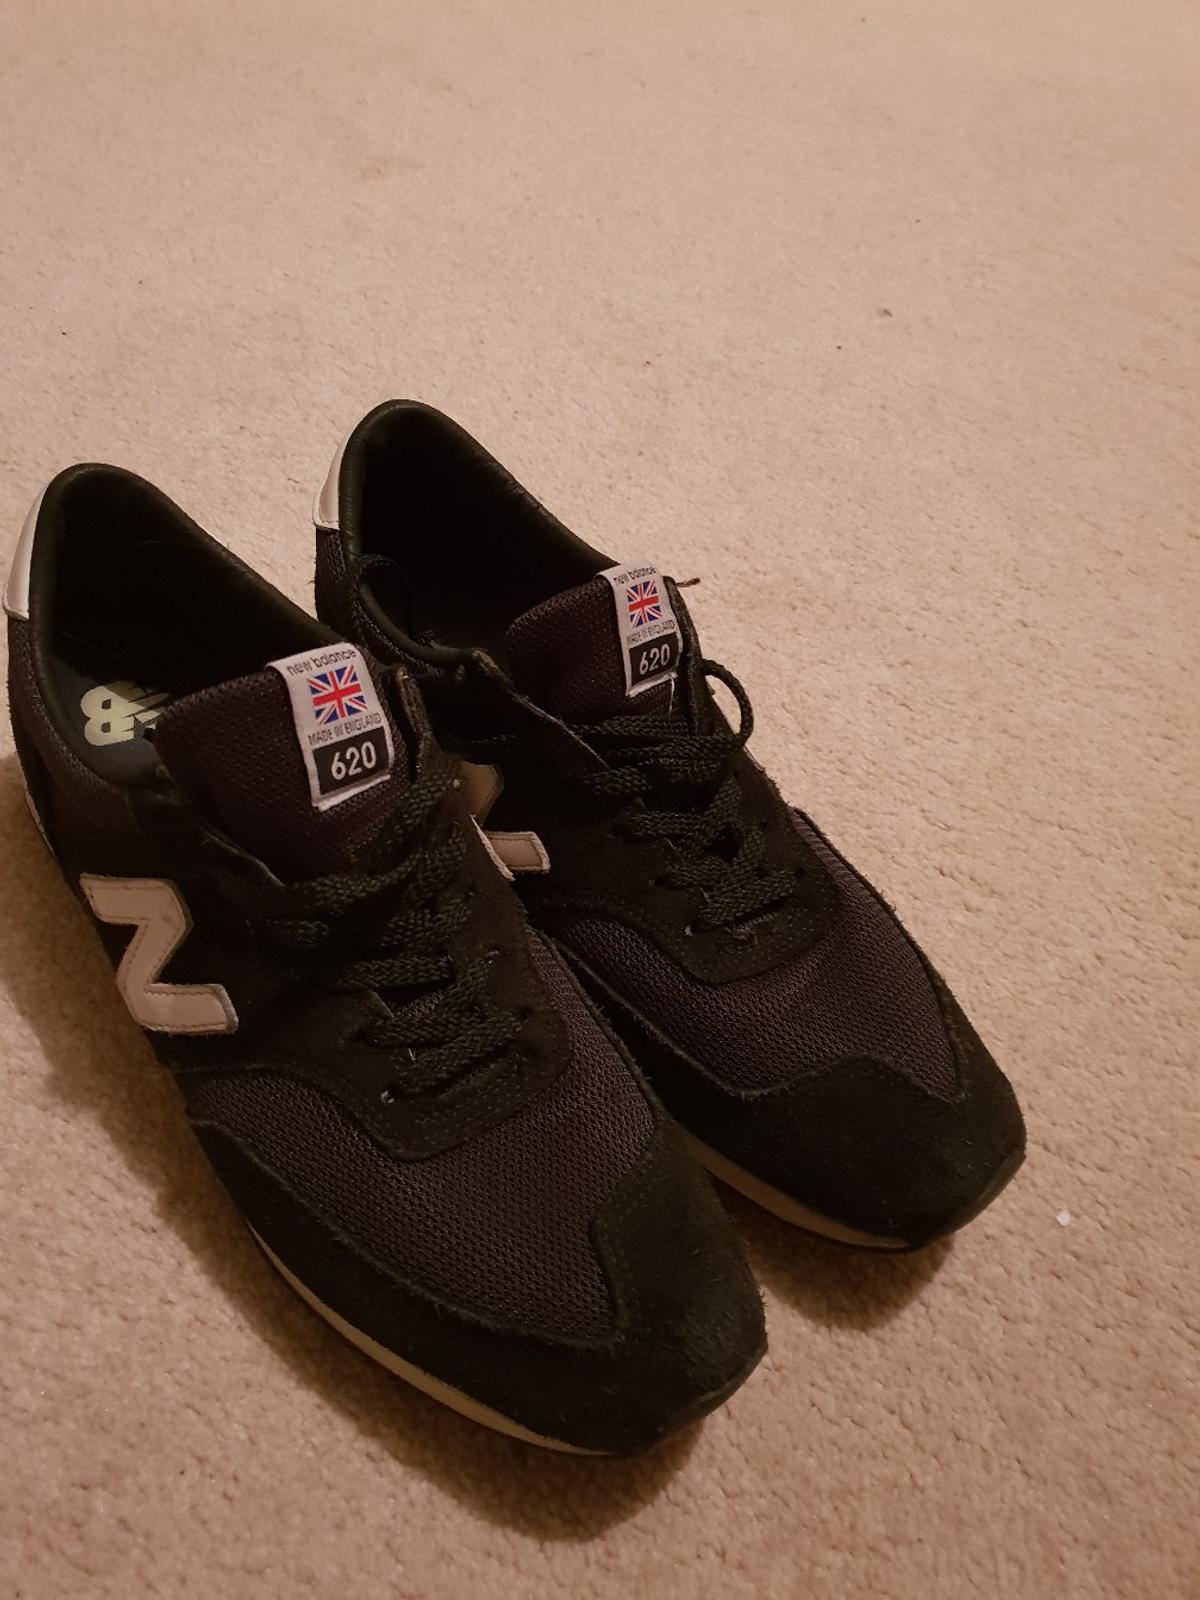 new balance 620 made in uk